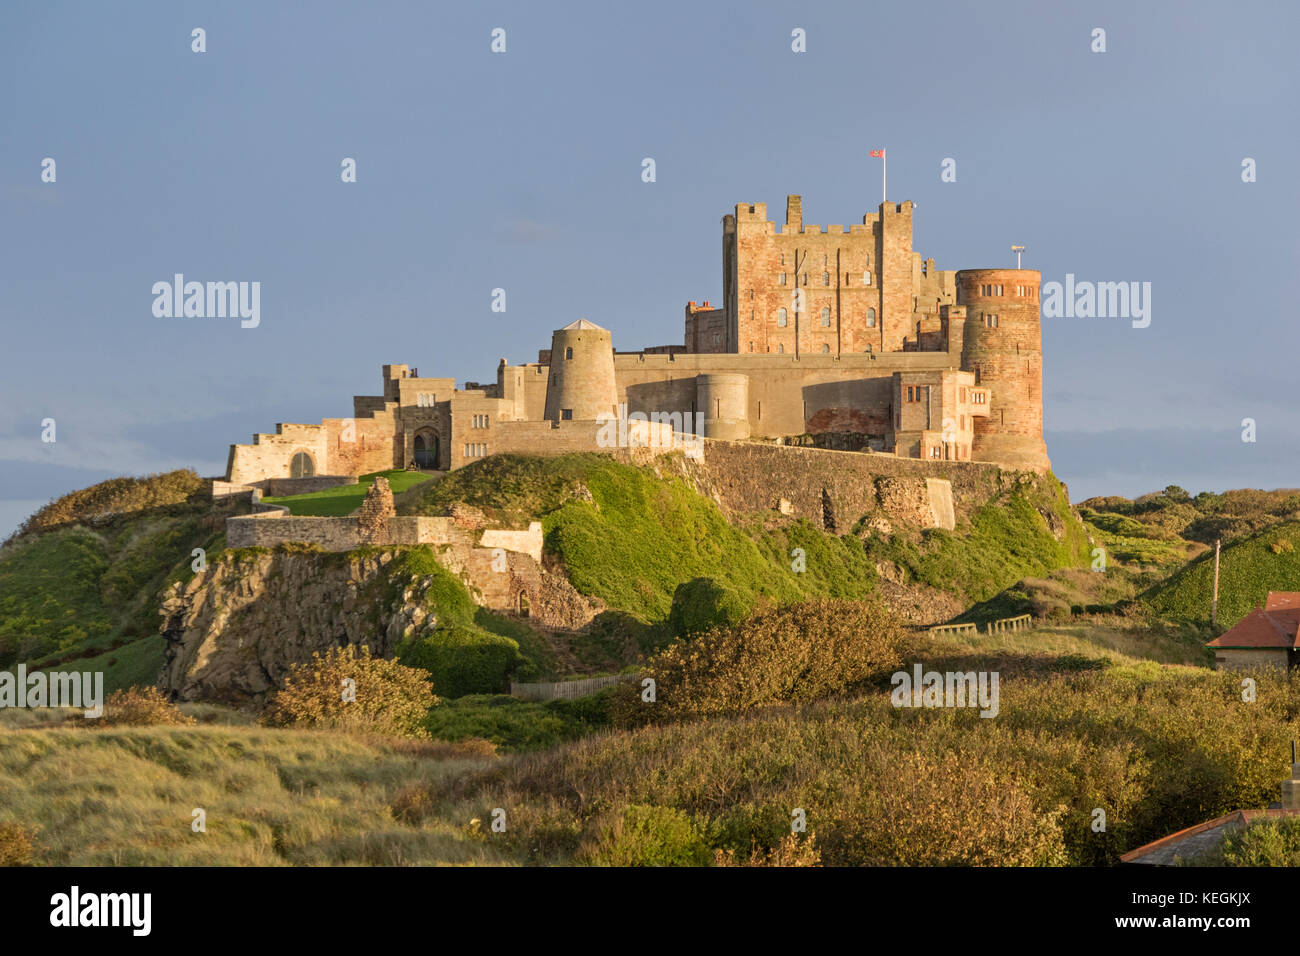 Evening light over Bamburgh Castle, Bamburgh, Northumberland, England, UK - Stock Image